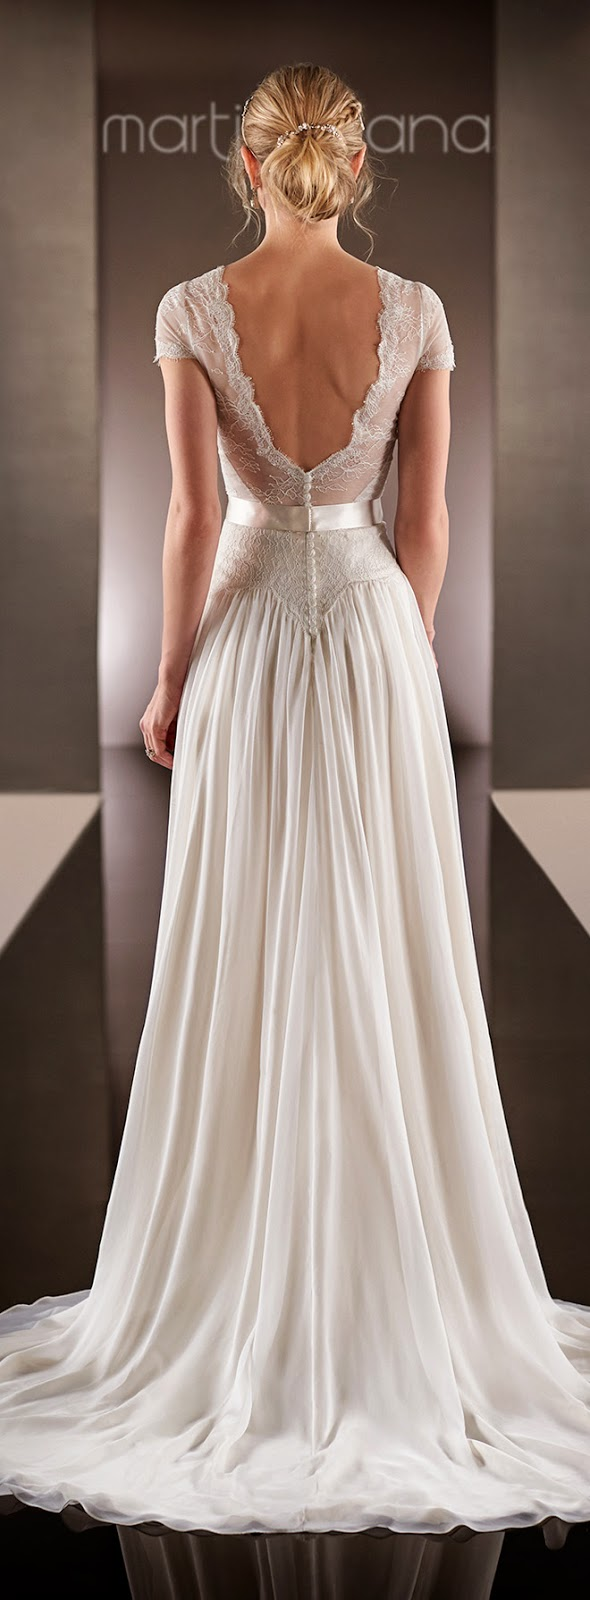 martina liana spring 2015 bridal collection